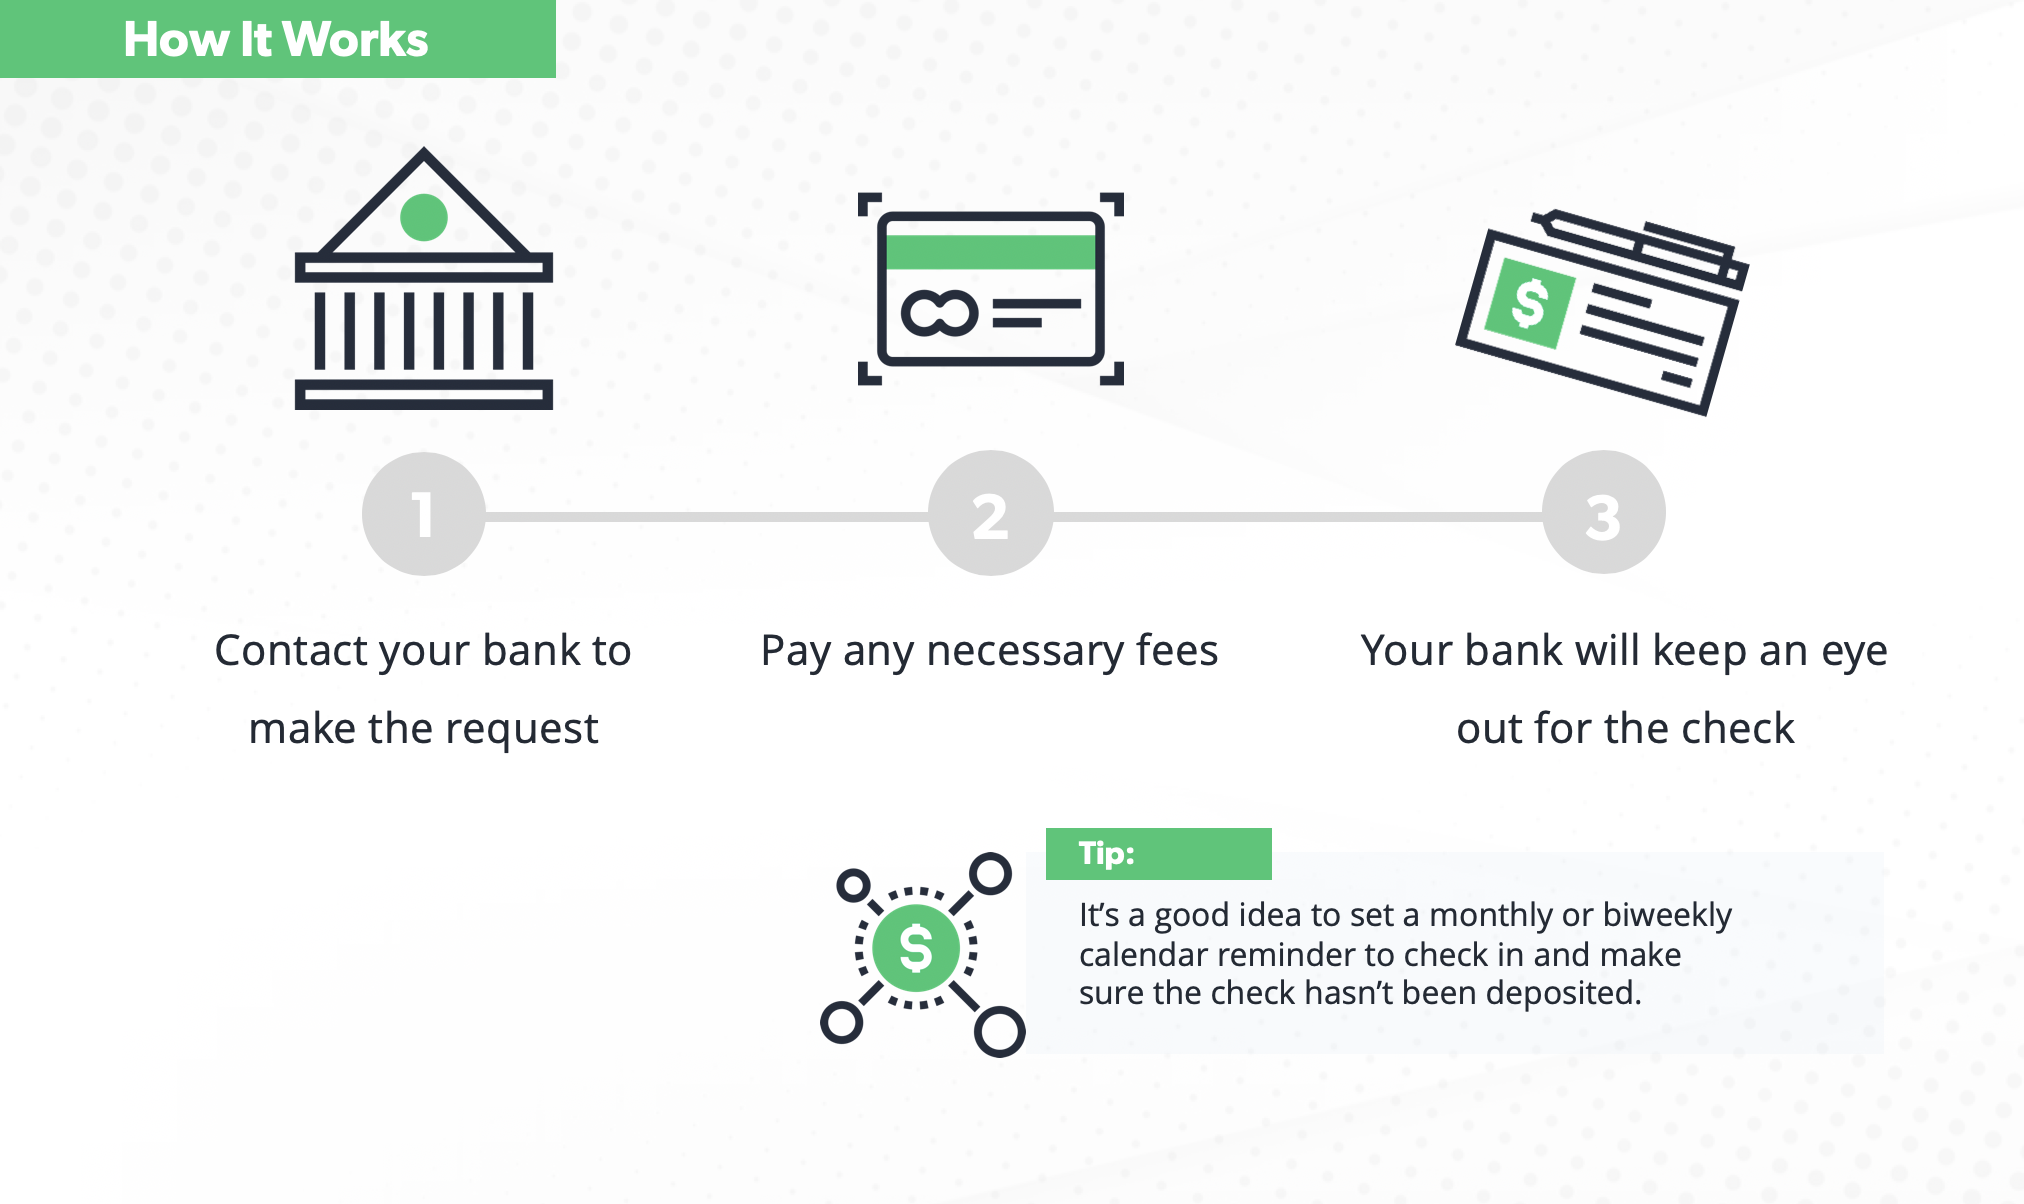 Diagram showing the three steps to stopping payment on a check